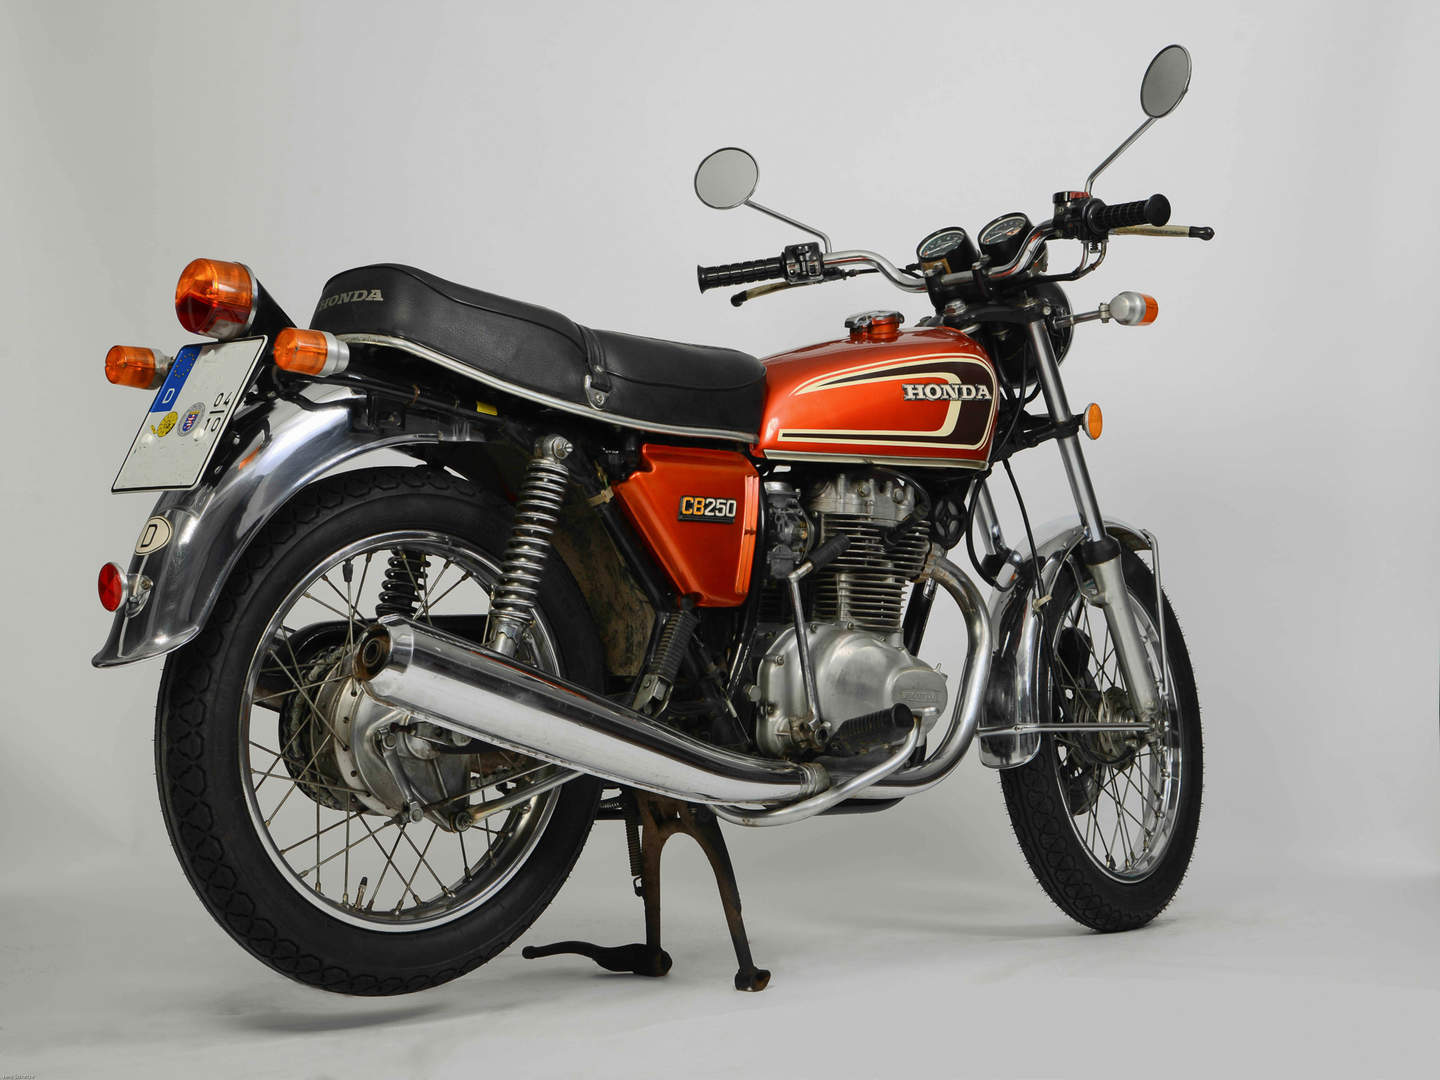 honda cb 250 k 1967 1976 meistverkaufte 250er maschine. Black Bedroom Furniture Sets. Home Design Ideas